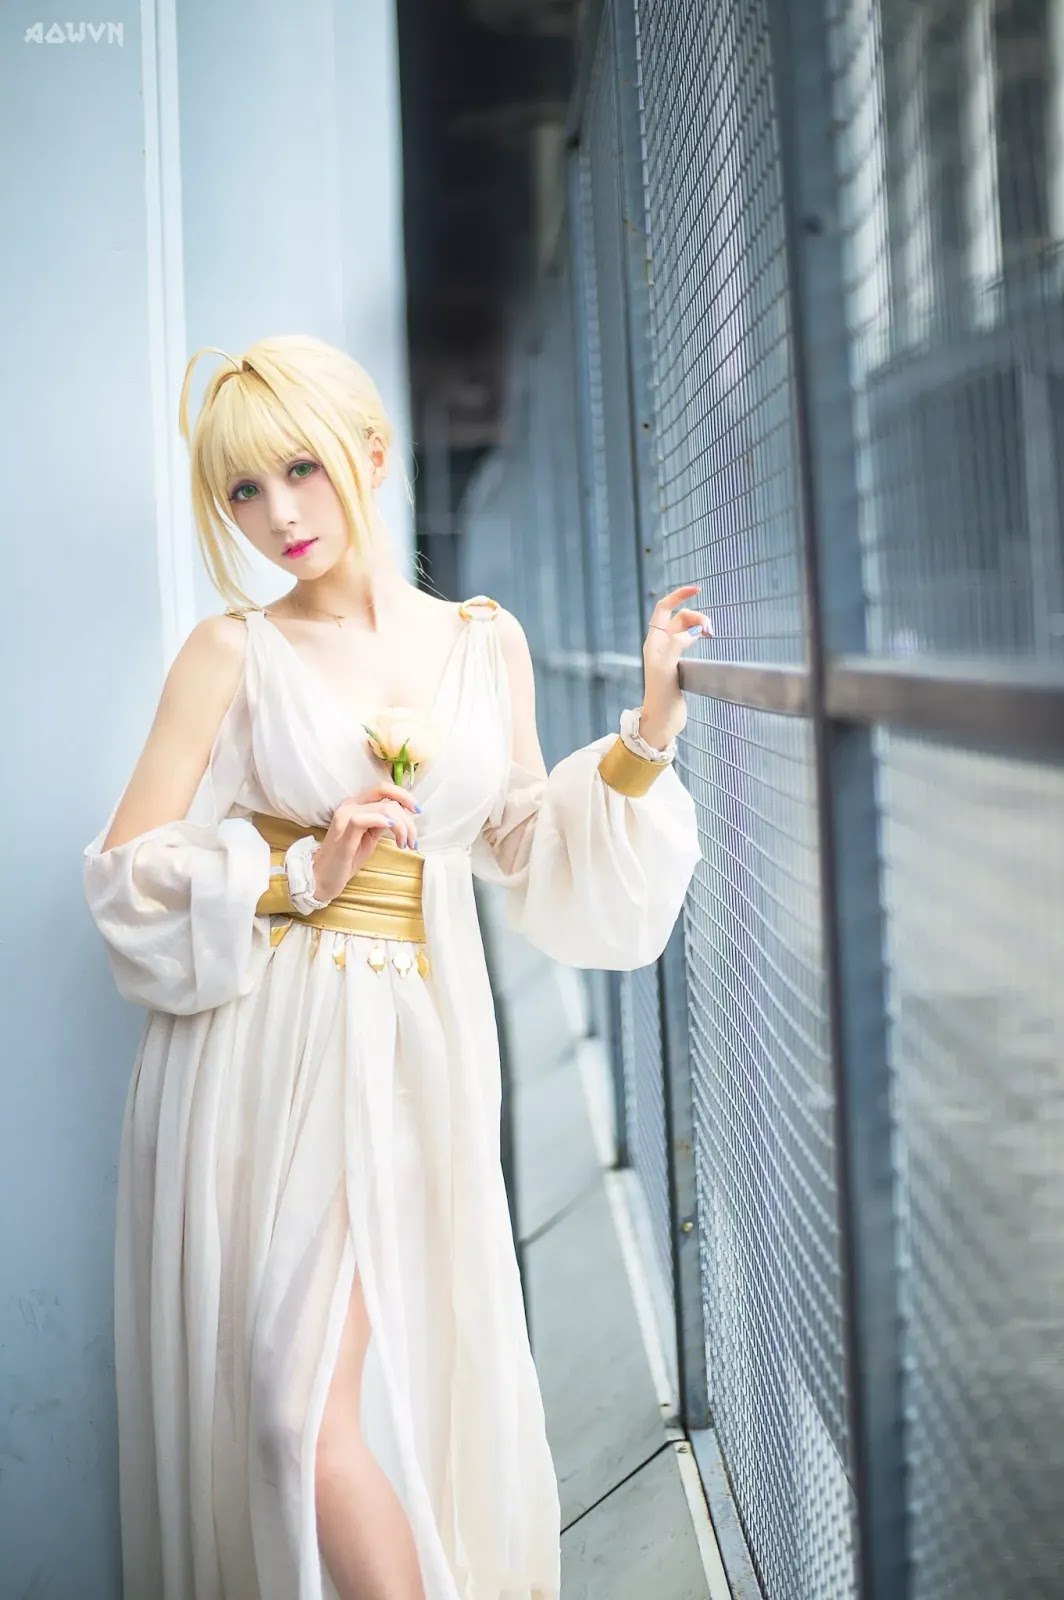 AowVN.org minz%2B%252816%2529 - [ Cosplay ] Nero - Saber anime Fate by Xia Mei Jiang tuyệt đẹp | AowVN Wallpapers